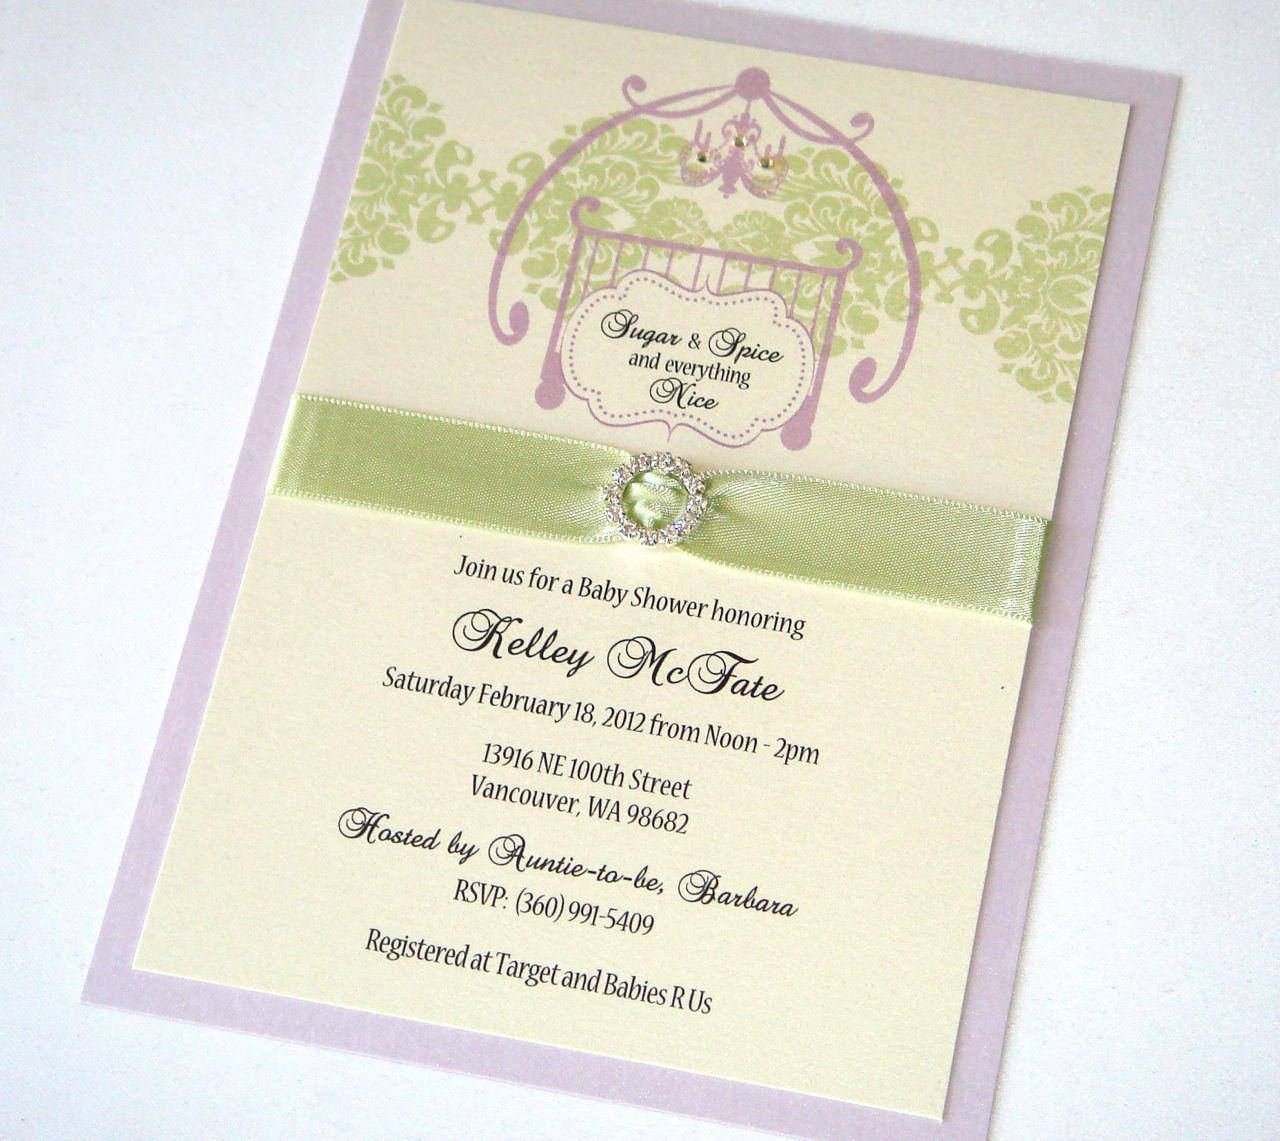 Sugar And Spice Baby Shower: Embellished Paperie: Sugar And Spice Baby Shower Invites